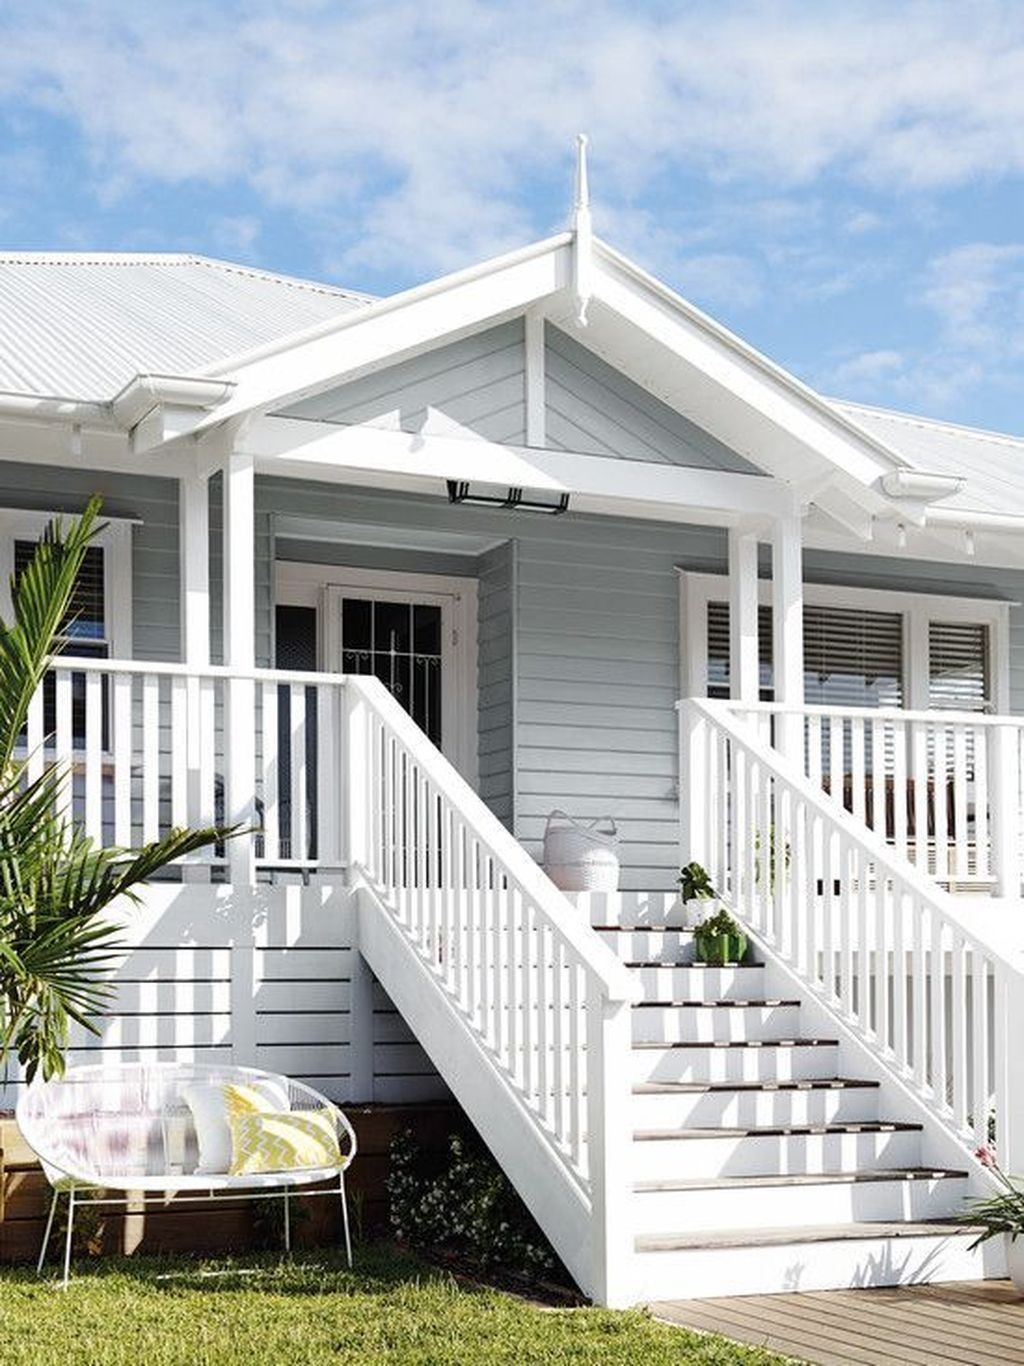 38 popular beach house exterior color ideas home design ideas rh pinterest co uk